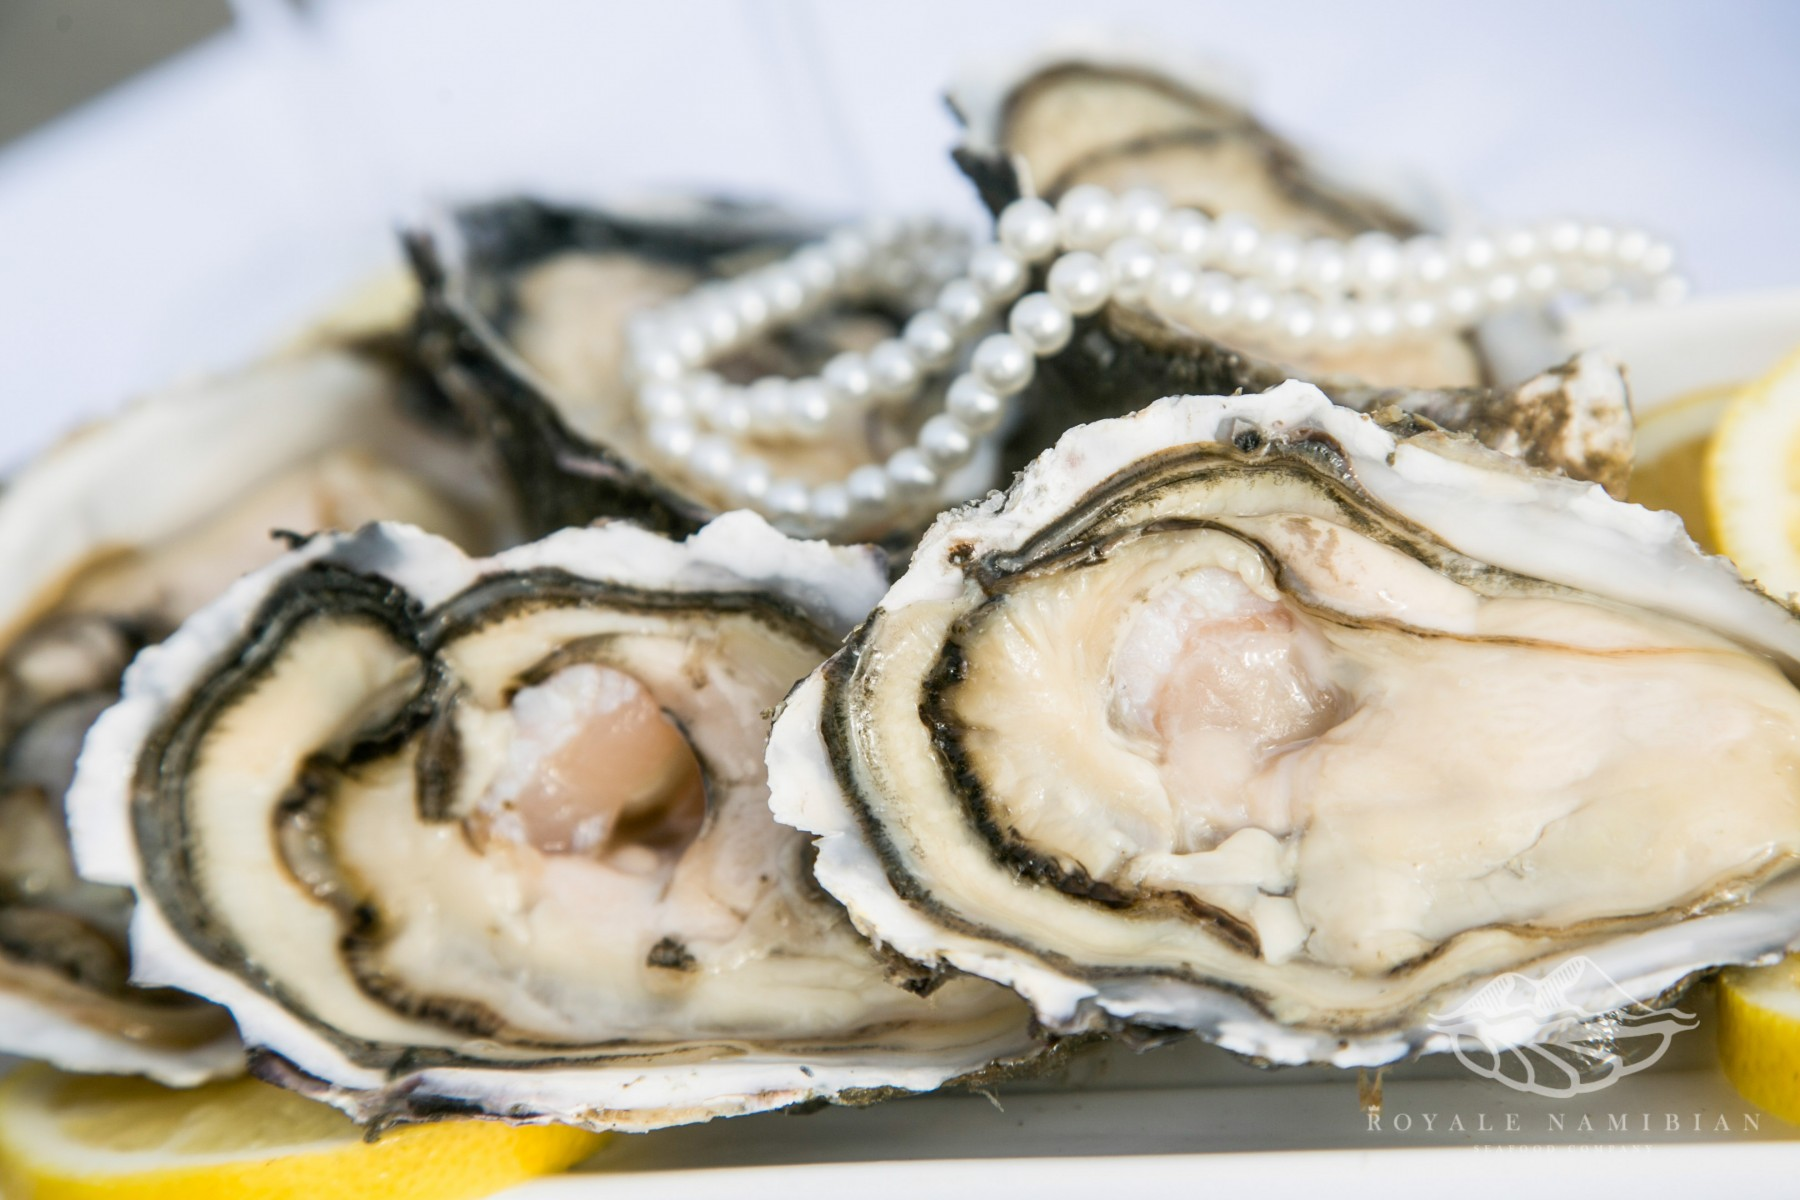 Royale Namibian Seafood Company - Oysters - Pearls - Fermar Oysters march 2015_58